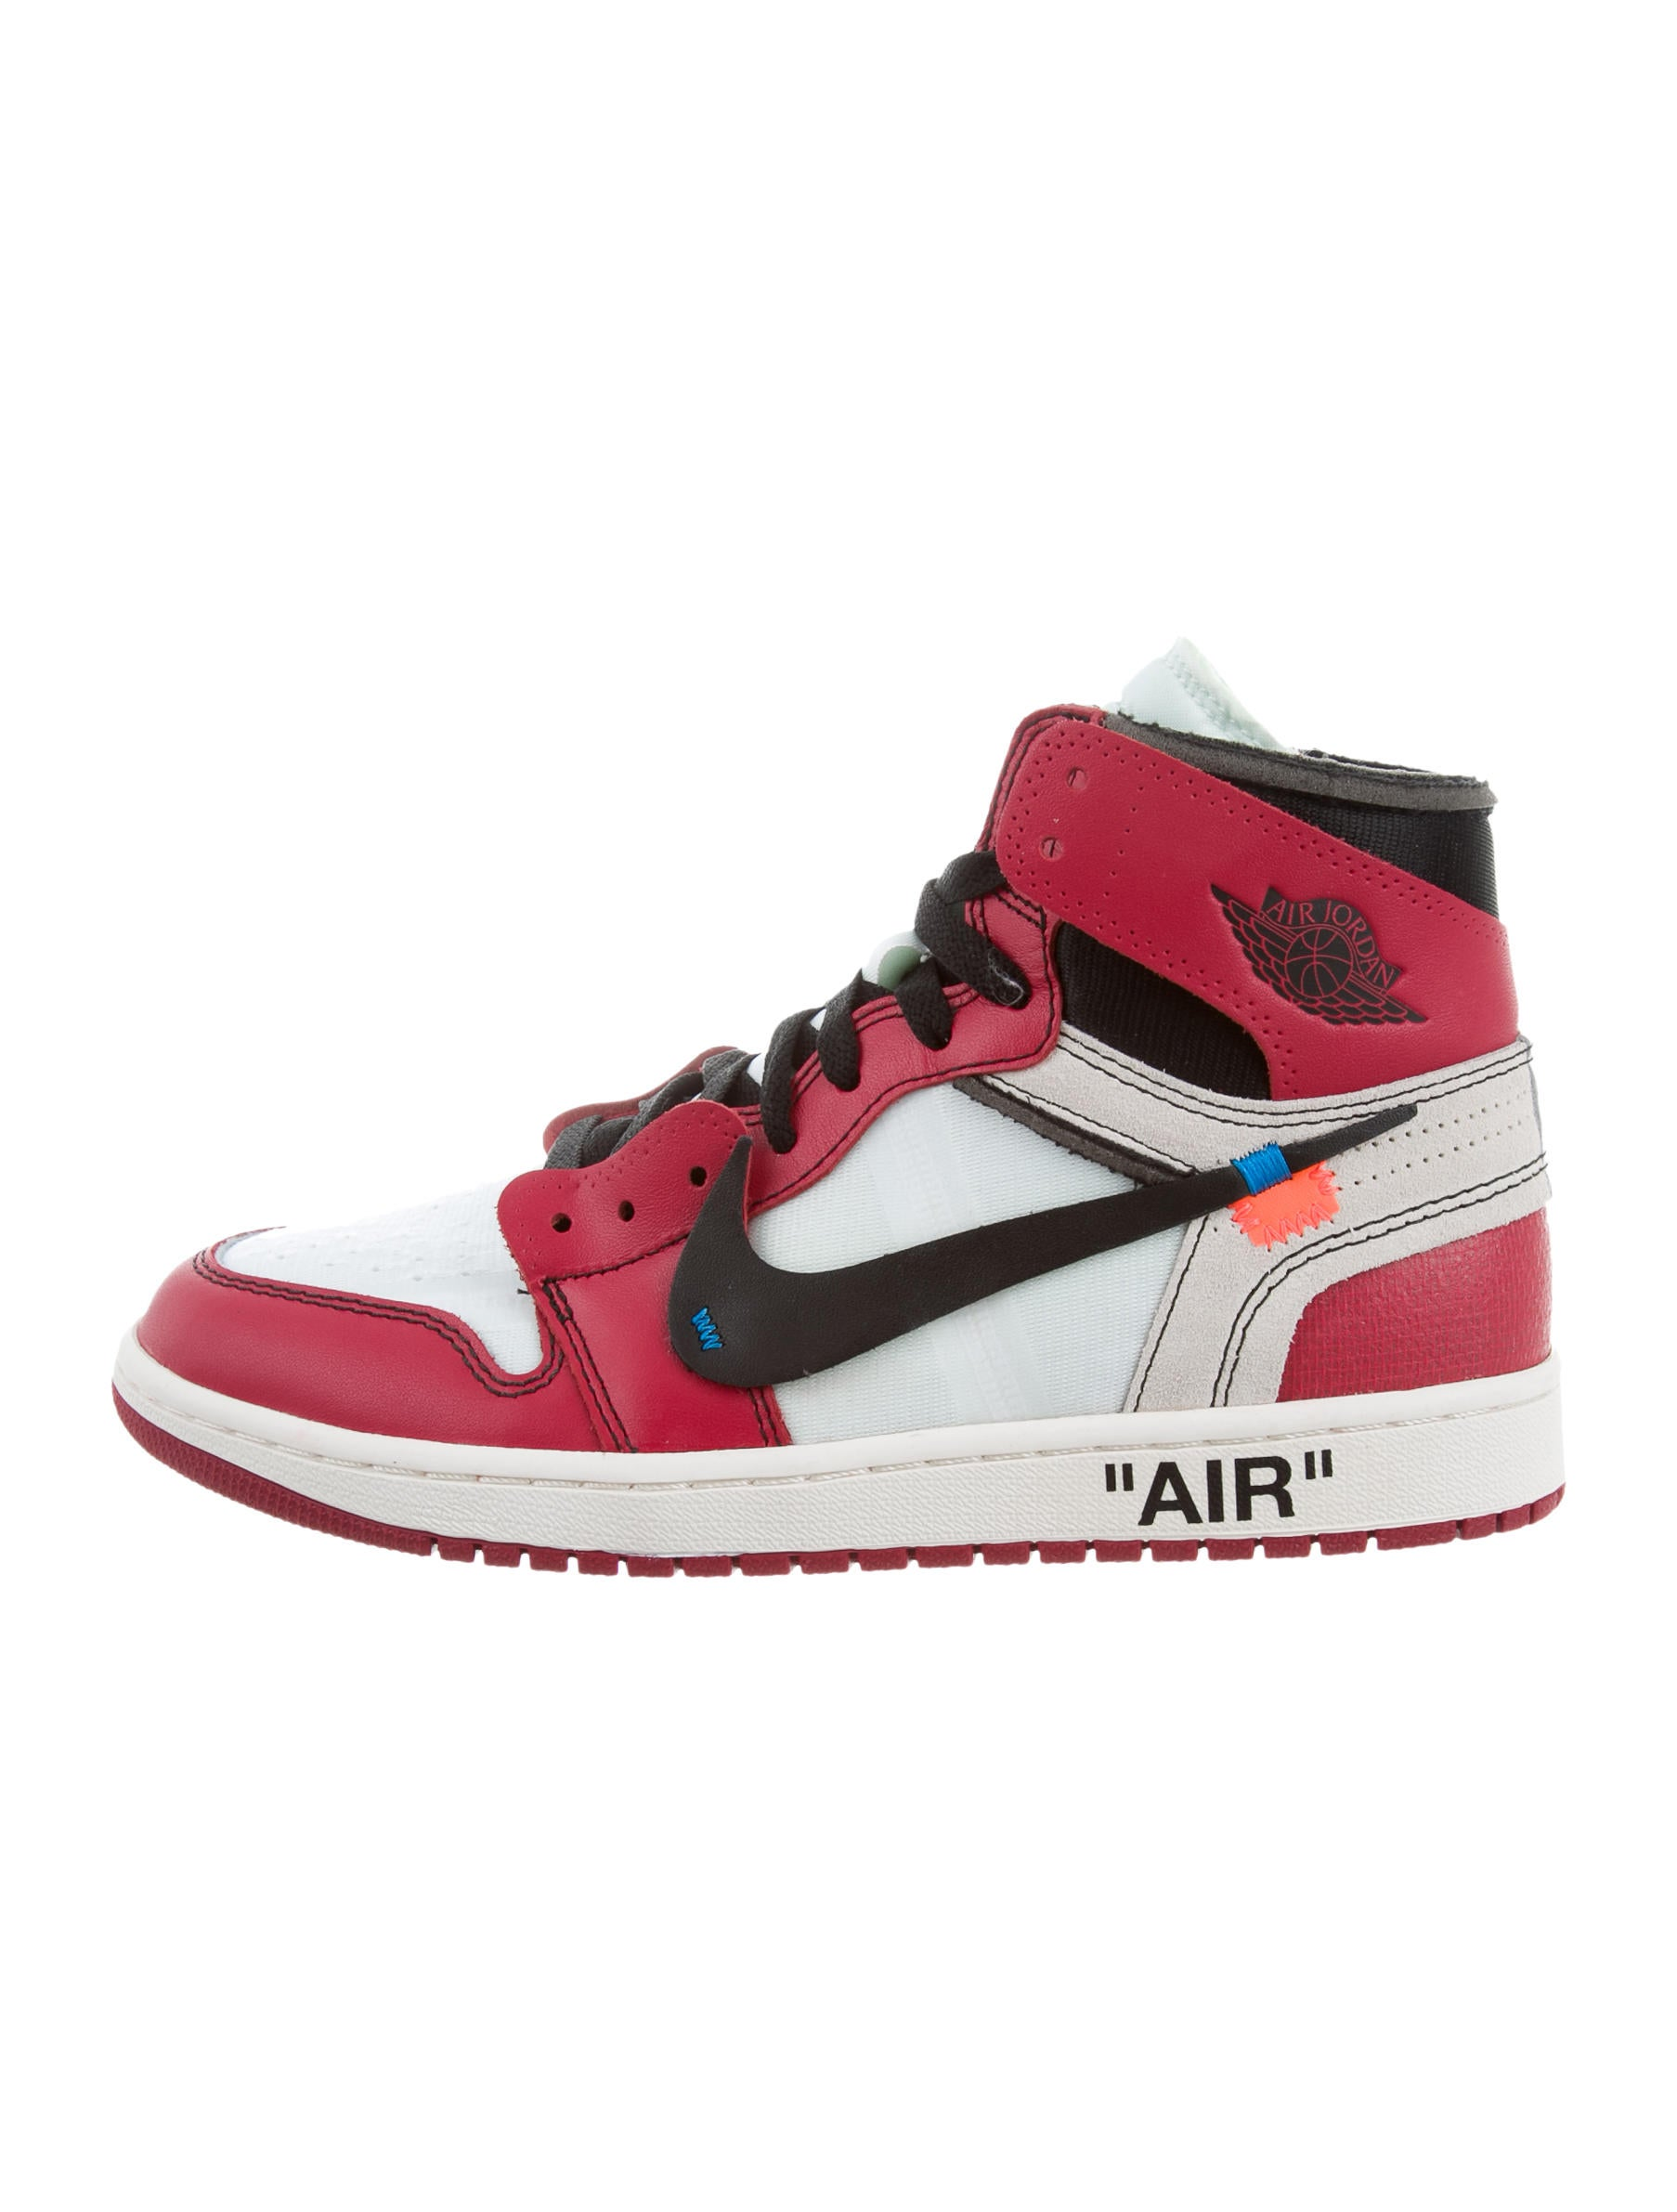 Off White x Virgil Abloh x Nike The TEN Air Jordan 1  : WOWVA200041enlarged from www.therealreal.com size 1806 x 2382 jpeg 186kB